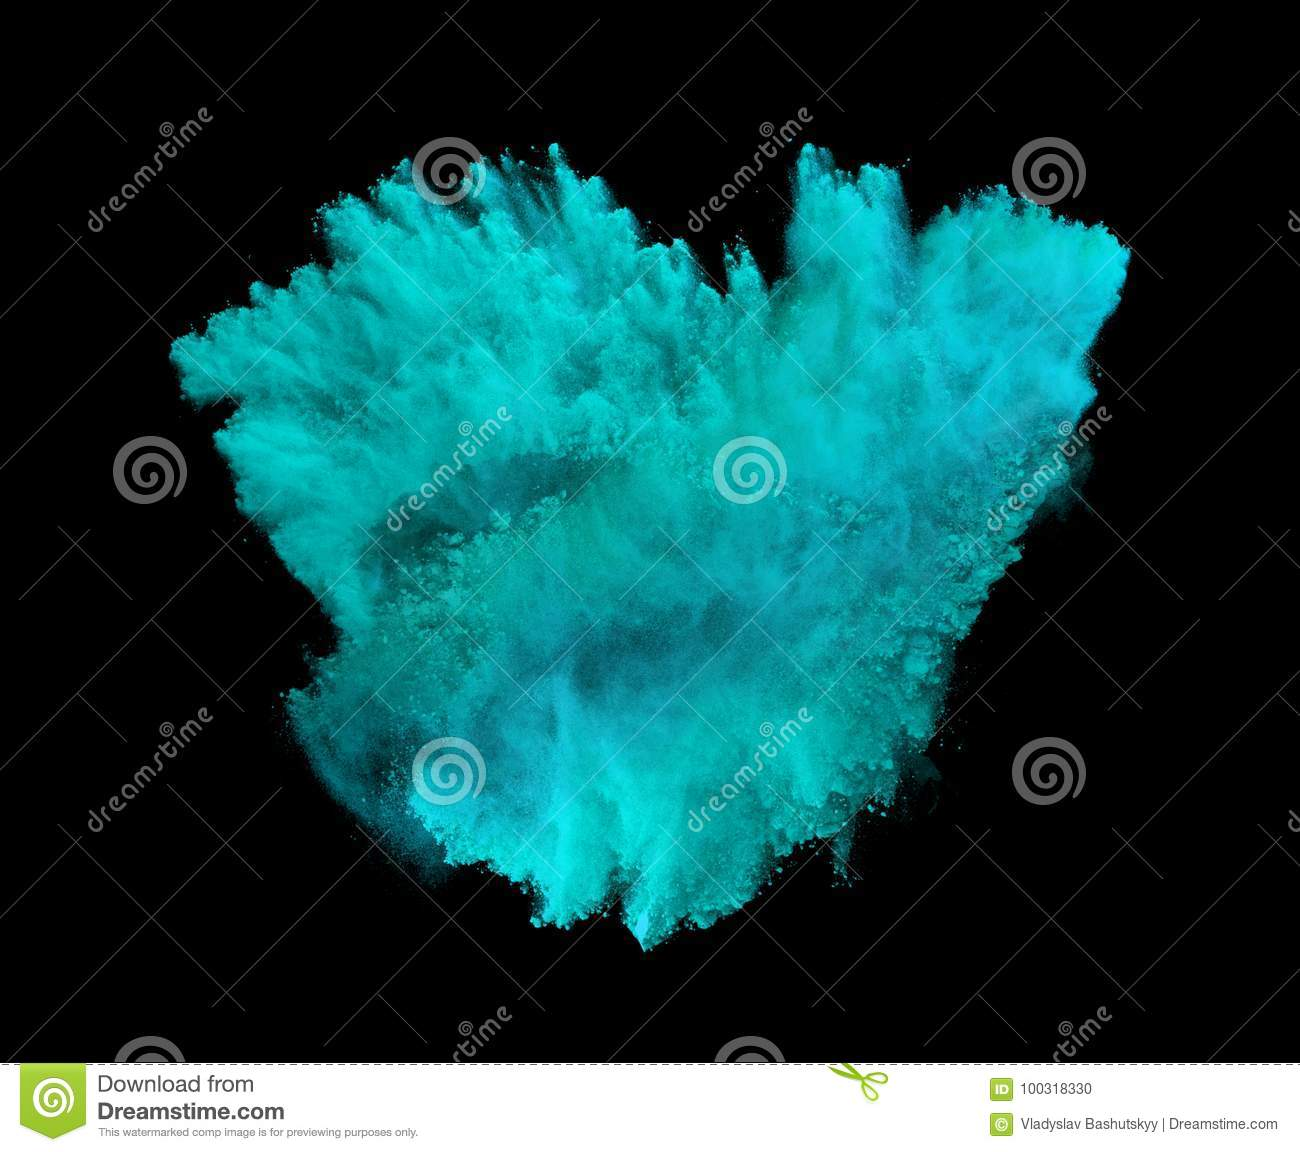 Powder explosion. Closeup of blue dust particle explosion isolated on background